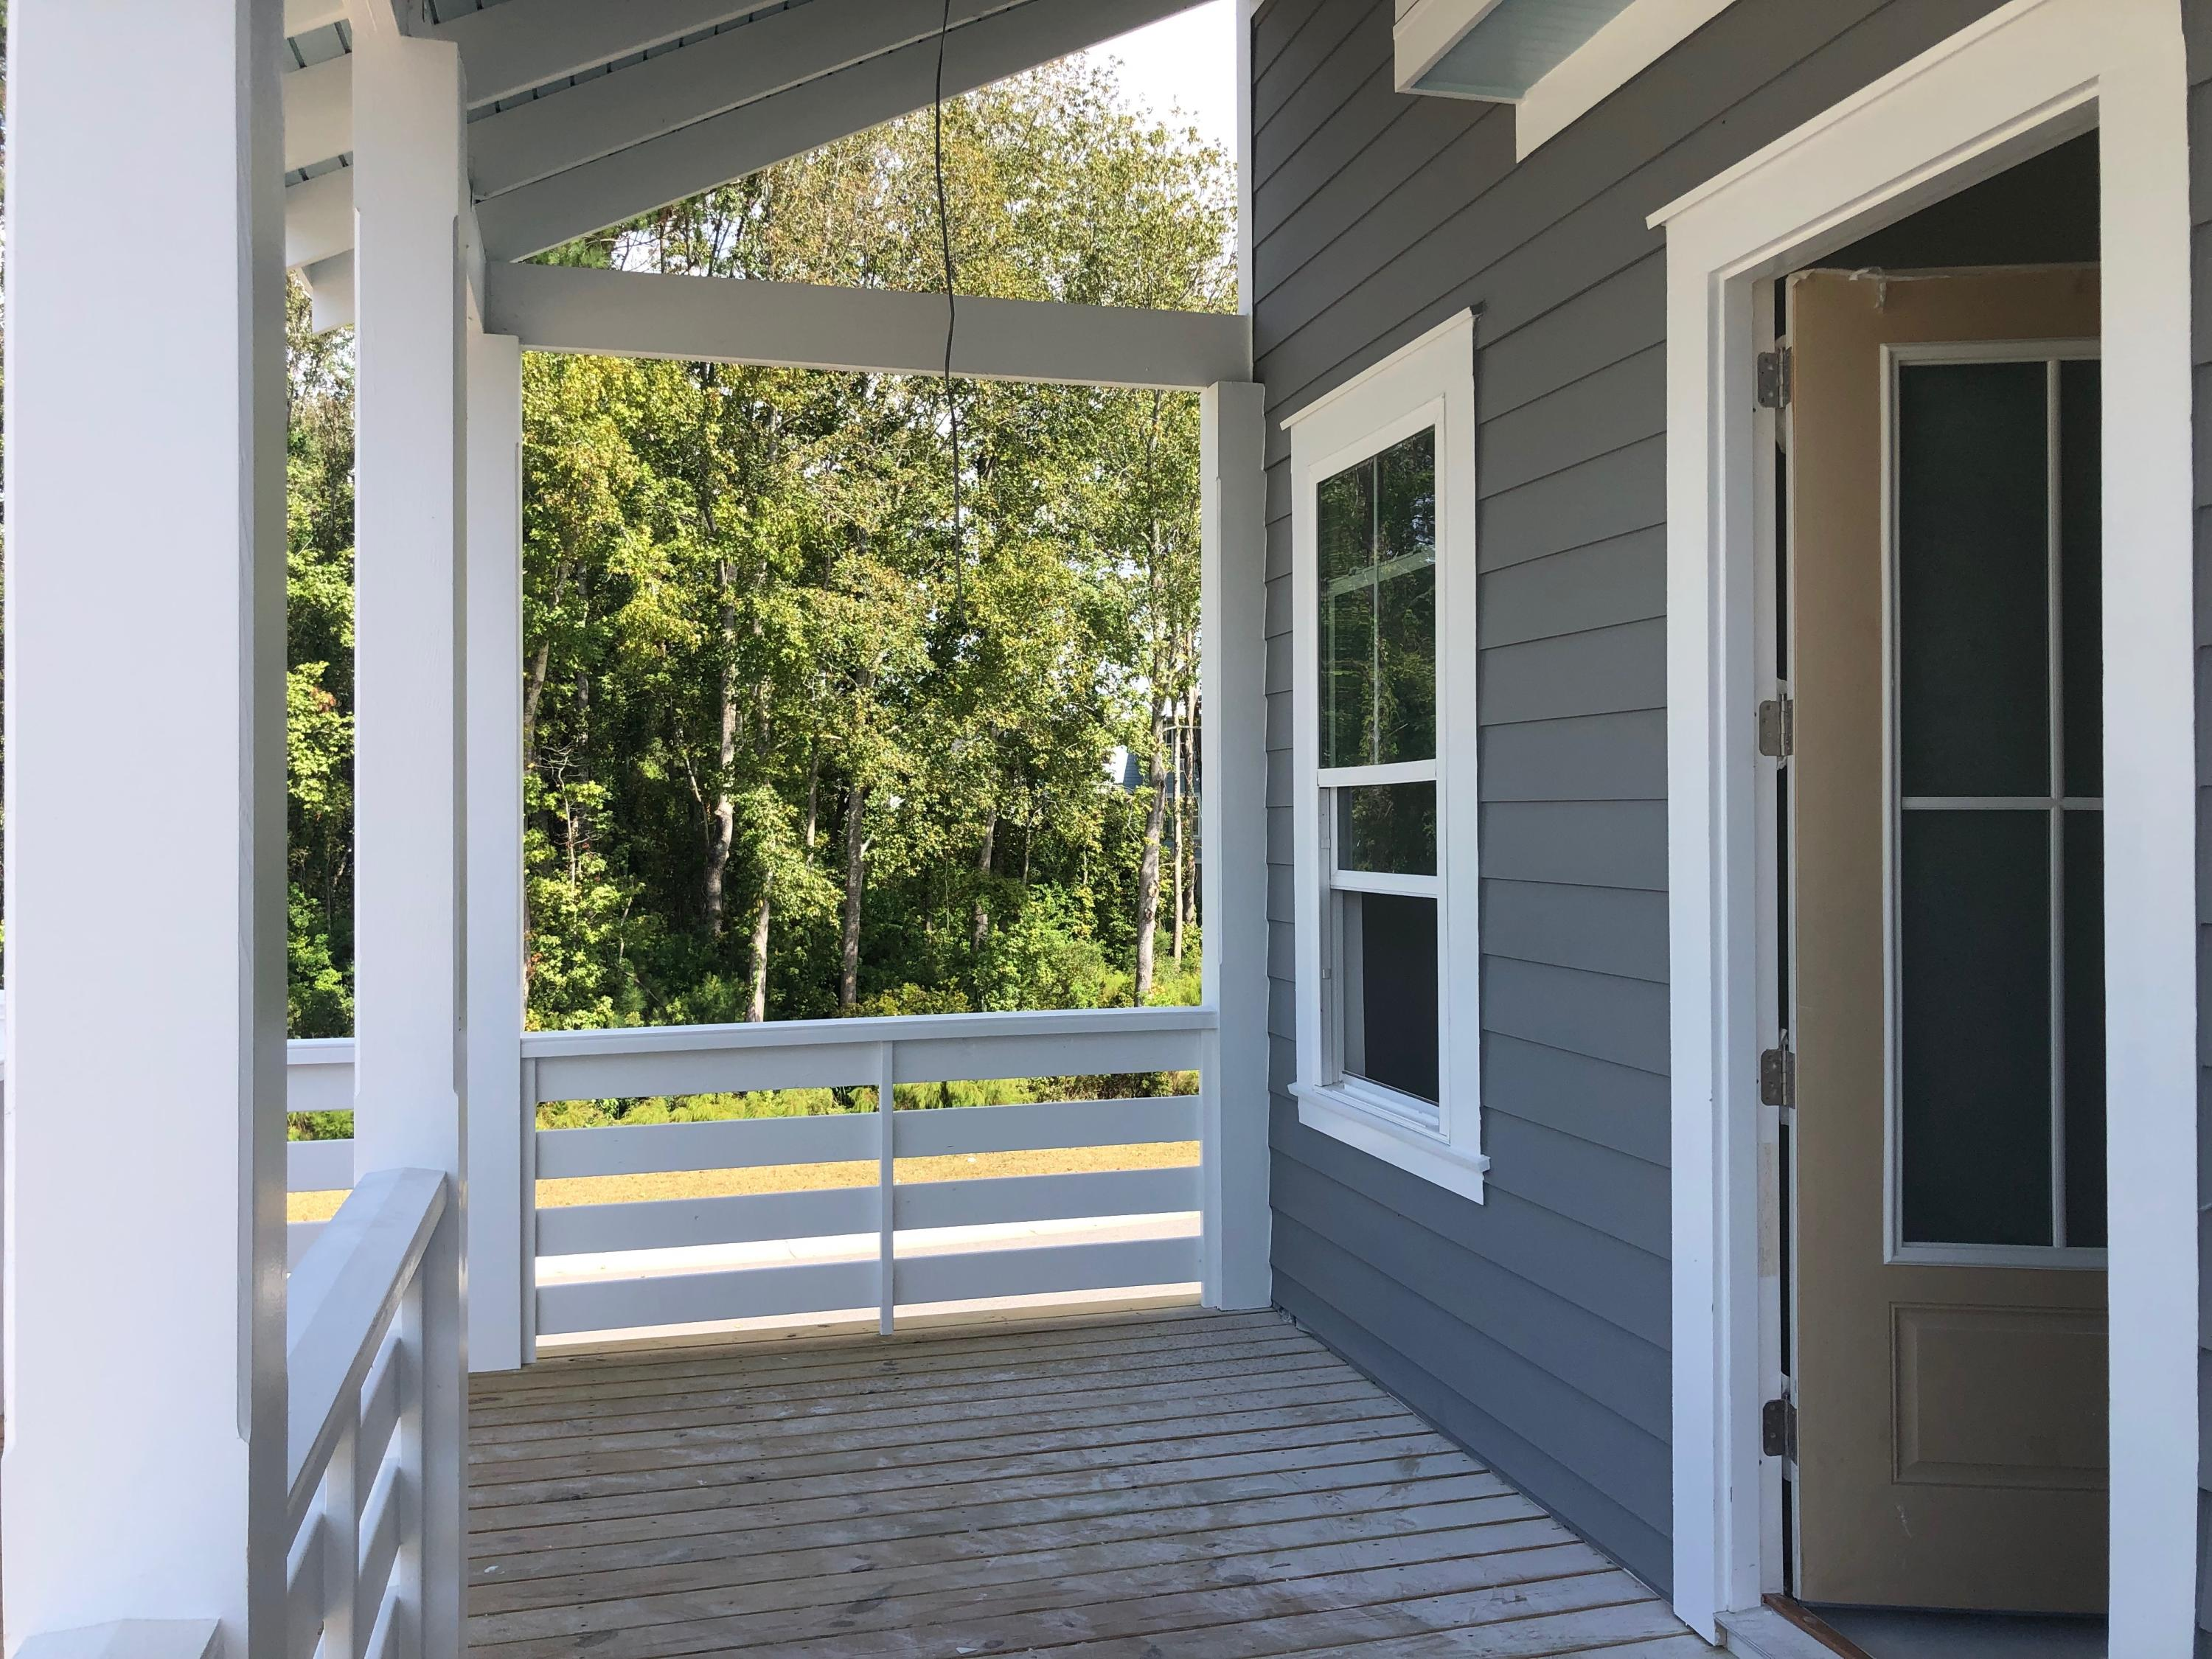 Stratton by the Sound Homes For Sale - 1476 Stratton Place, Mount Pleasant, SC - 19